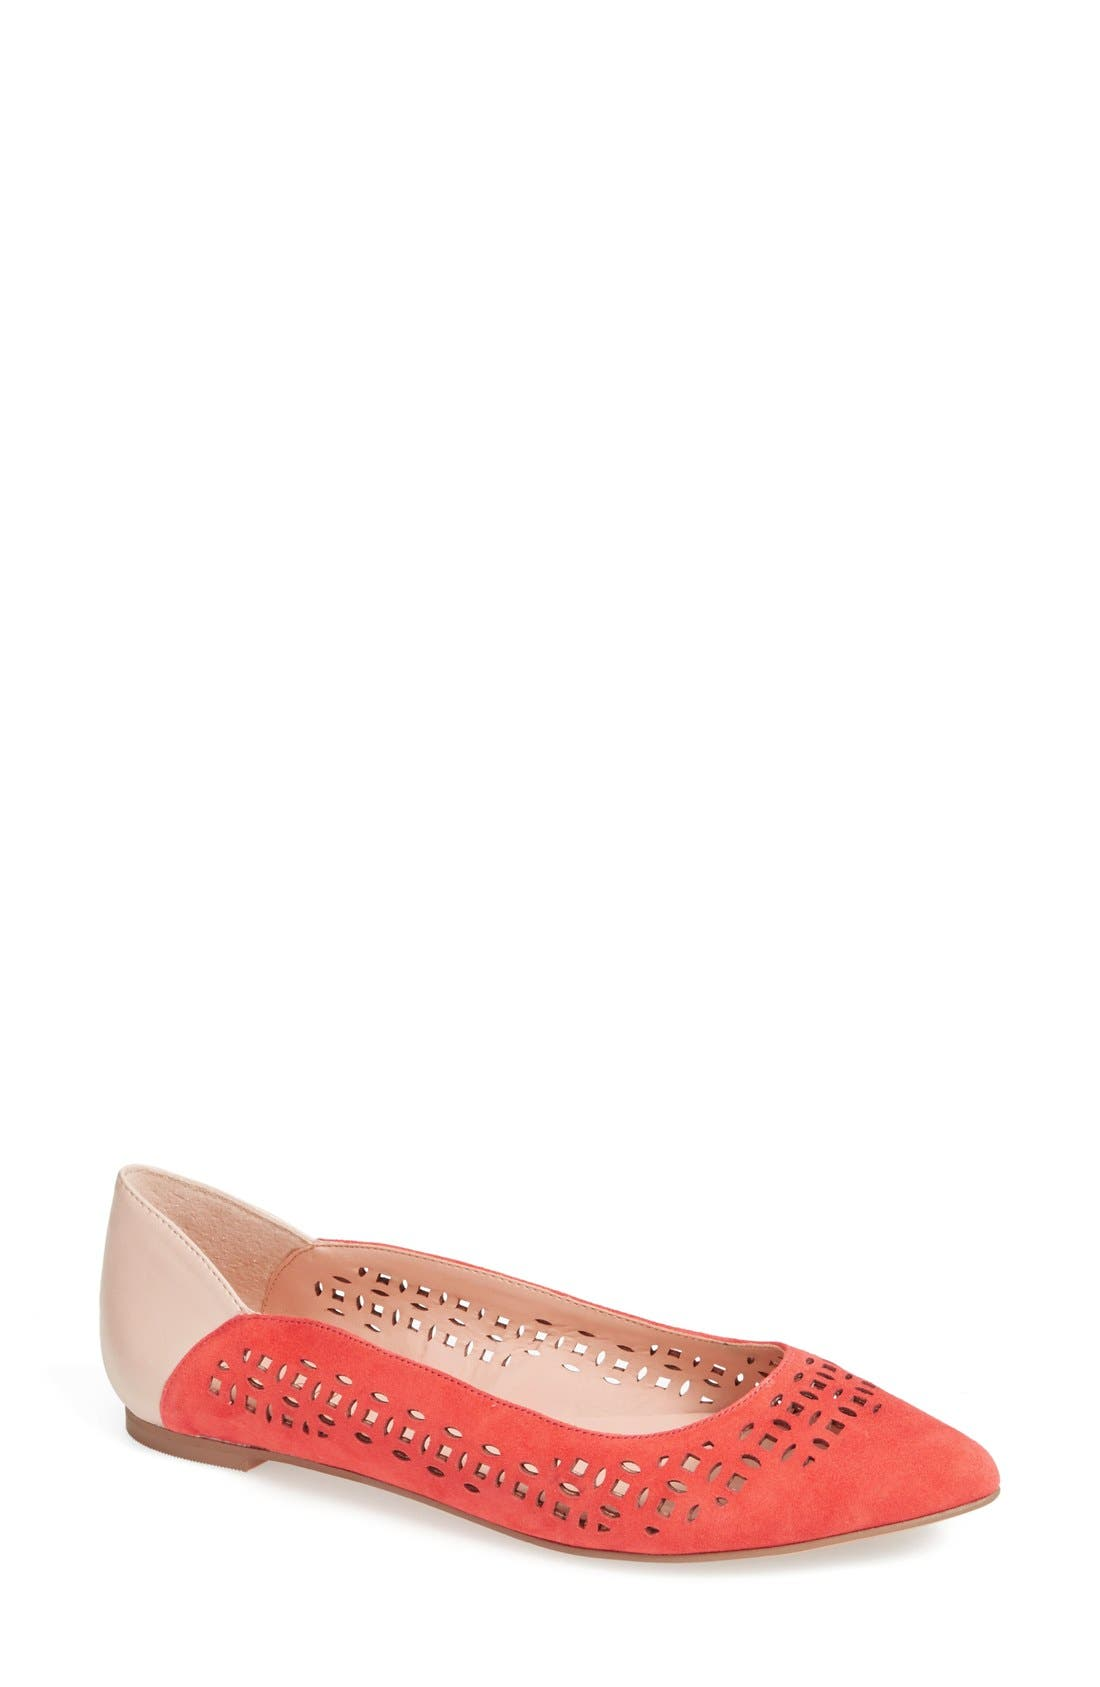 Alternate Image 1 Selected - Sole Society 'Barrie' Flat